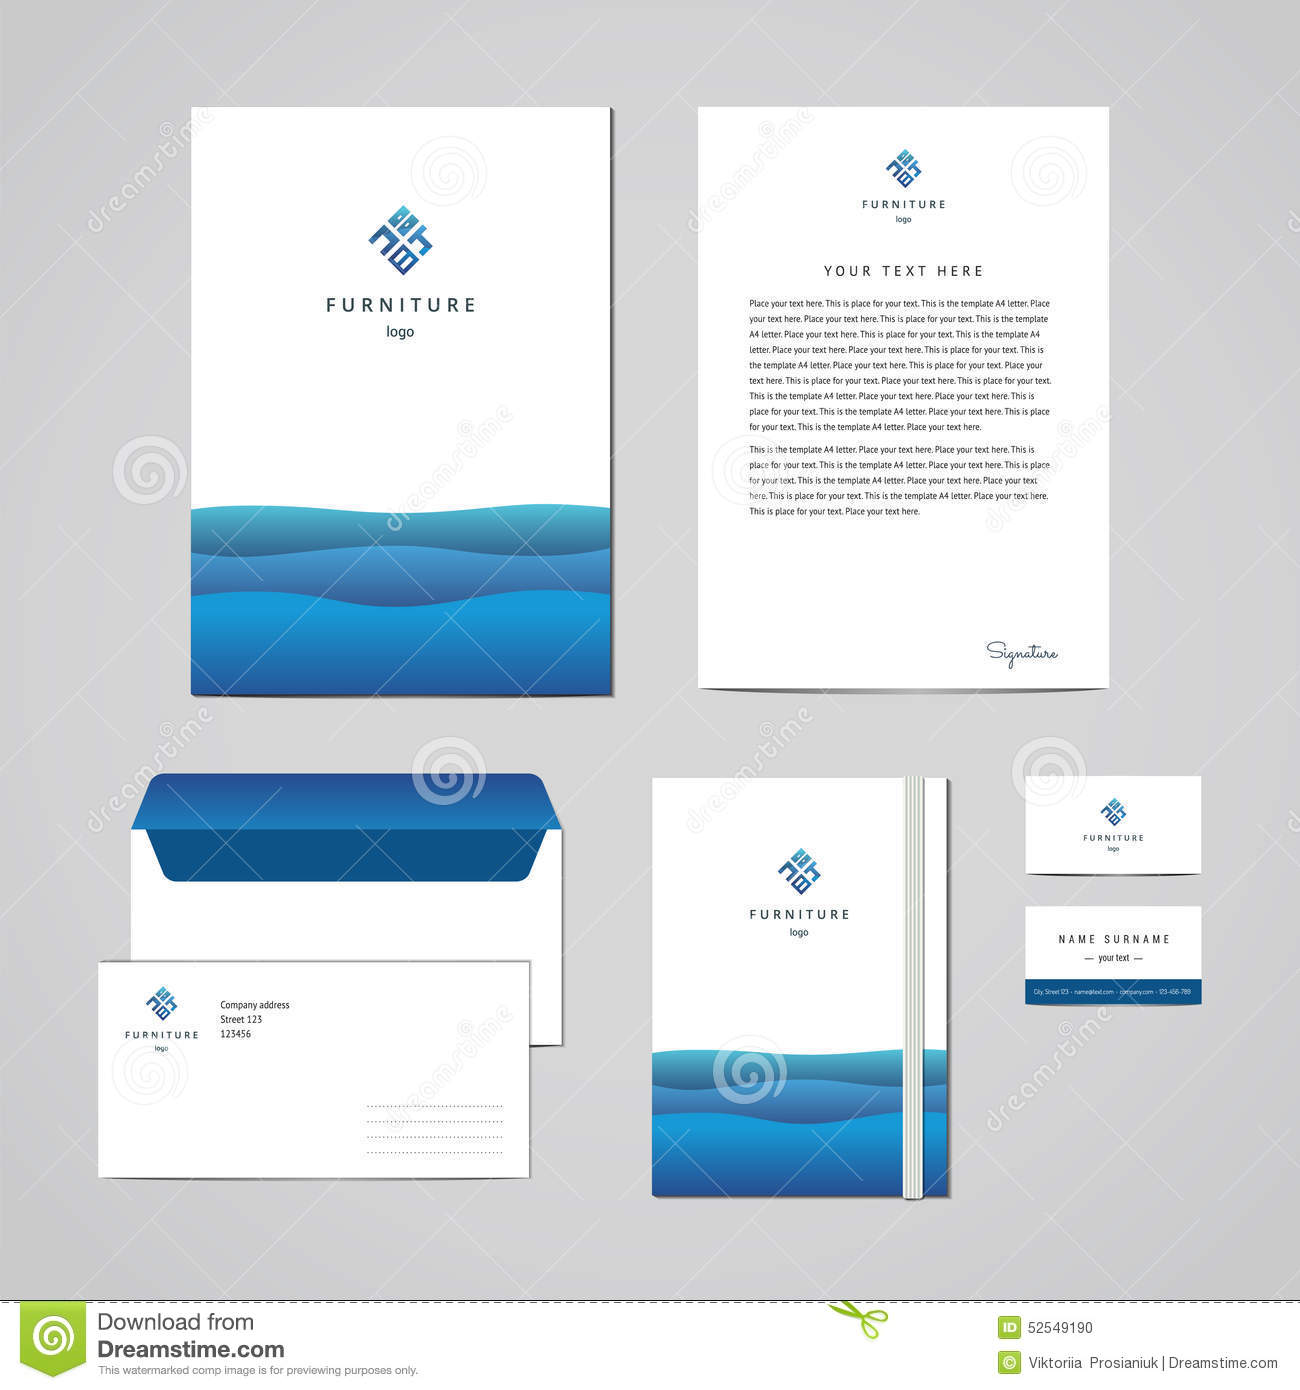 corporate identity furniture company blue design template